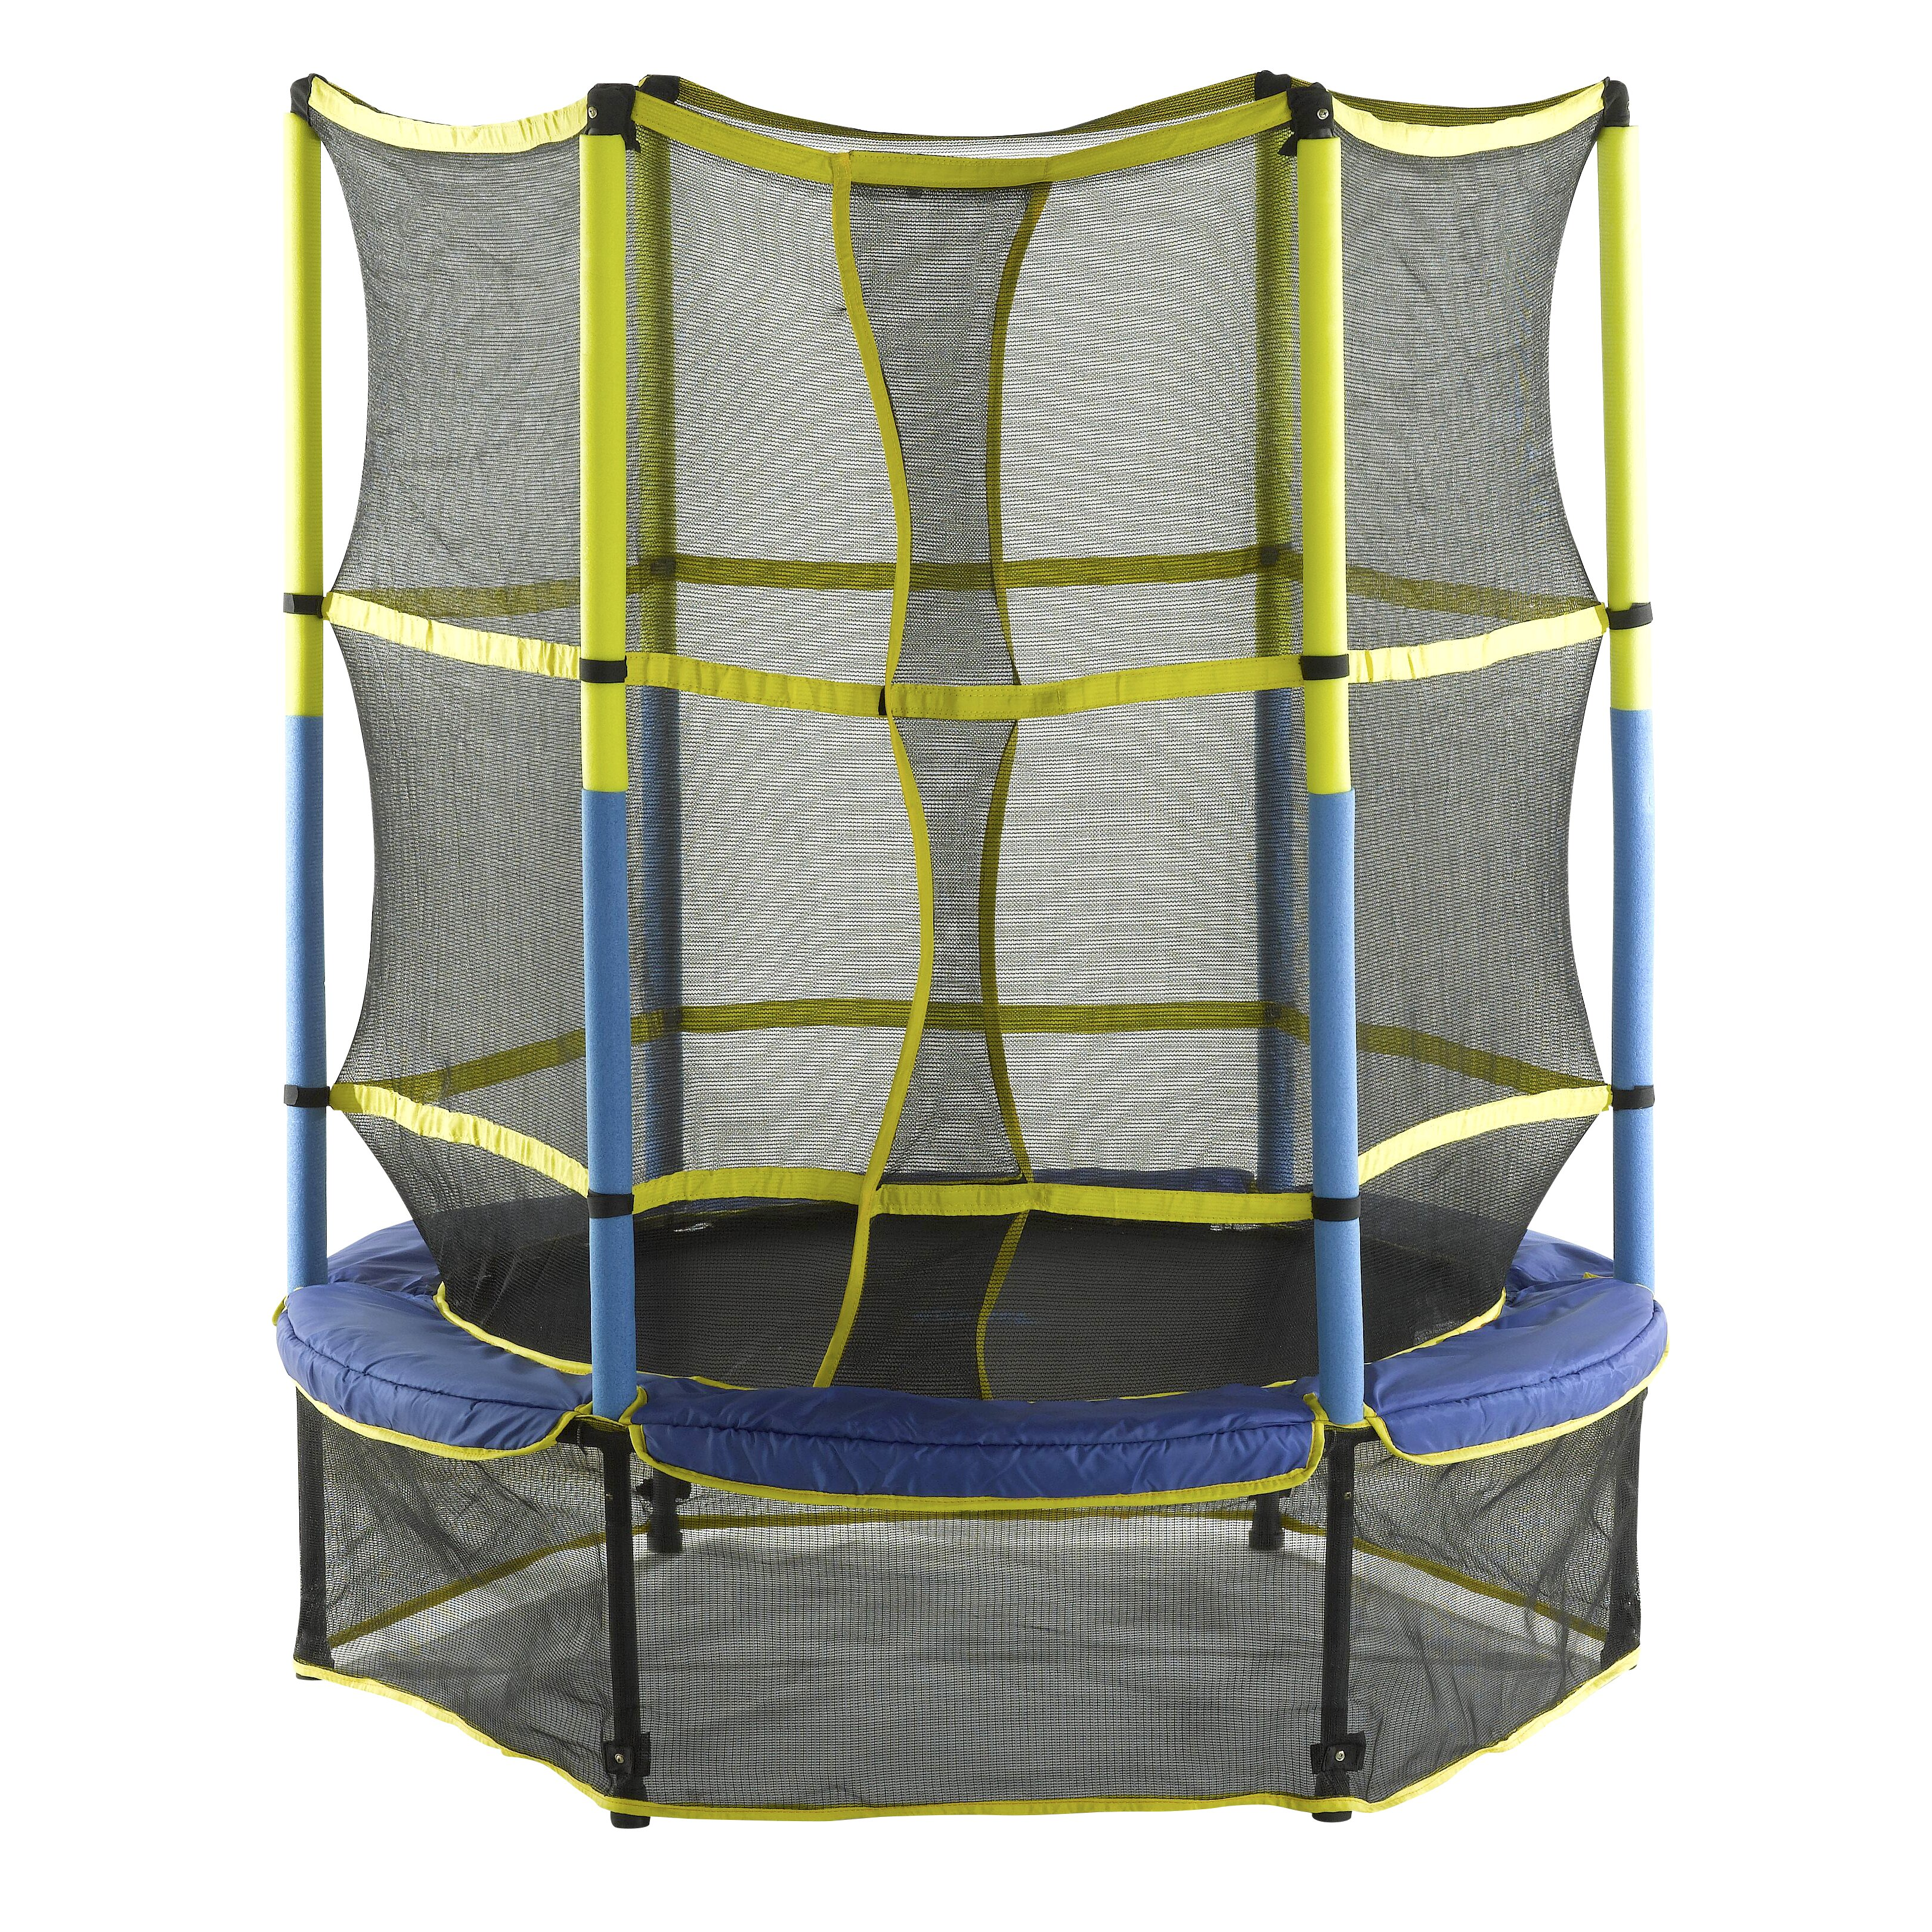 "Kid Trampoline Lafayette: Upper Bounce 55"" Kids Trampoline With Enclosure & Reviews"